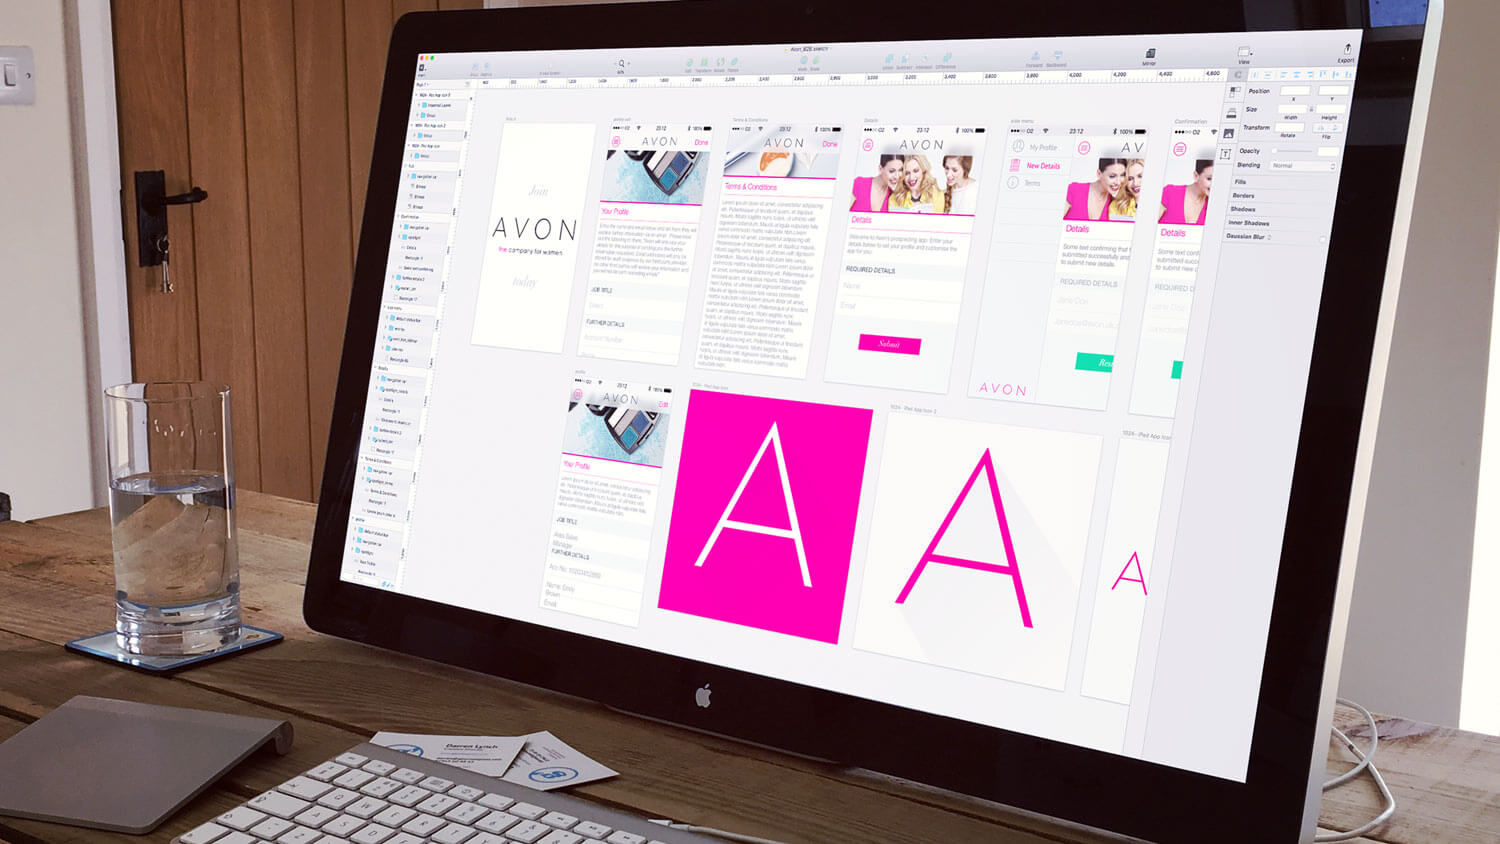 Screen layouts for the AVON corporate recruitment app